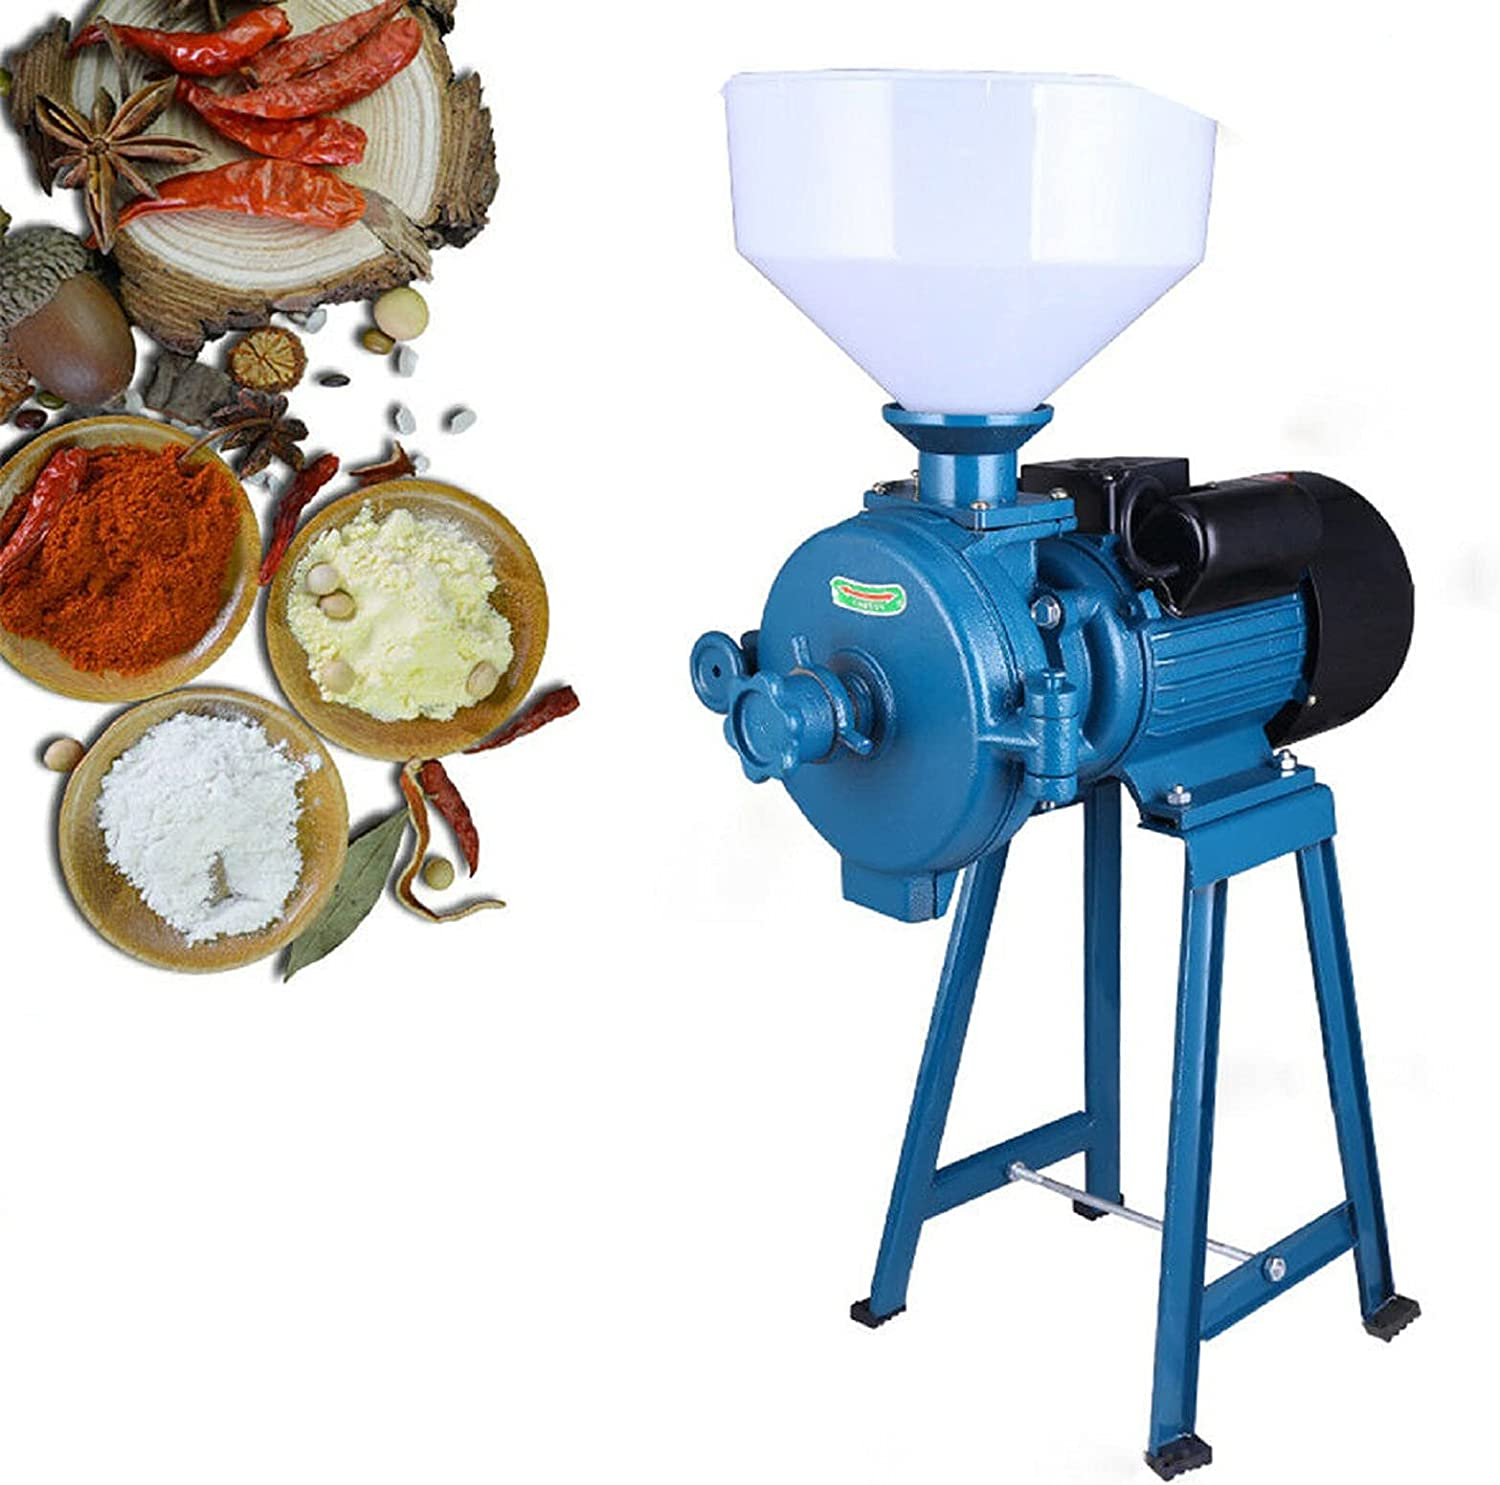 Commercial Electric Outlet sale feature Motorized Dry Max 64% OFF Flour Mill Feed Du 1500W Heavy